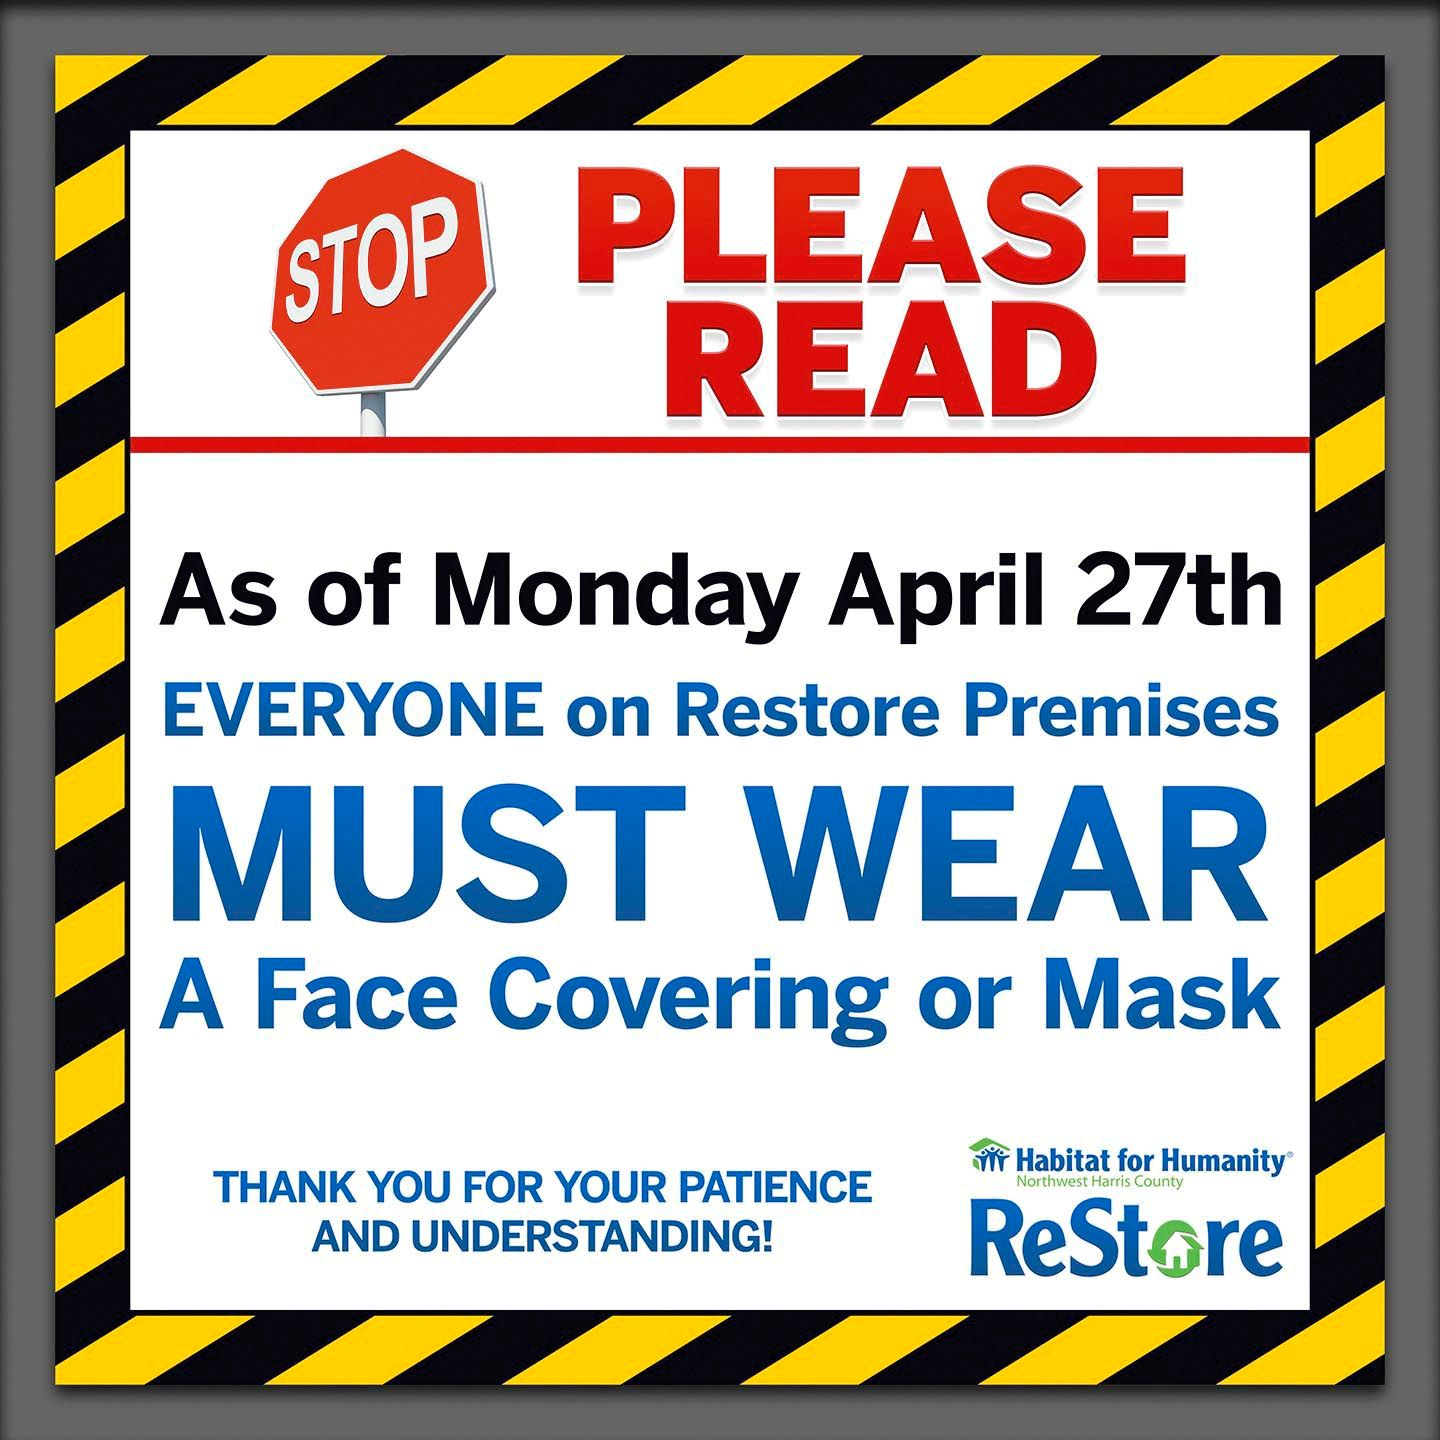 All Visitors to the ReStore Must Wear a Mask or Face Covering